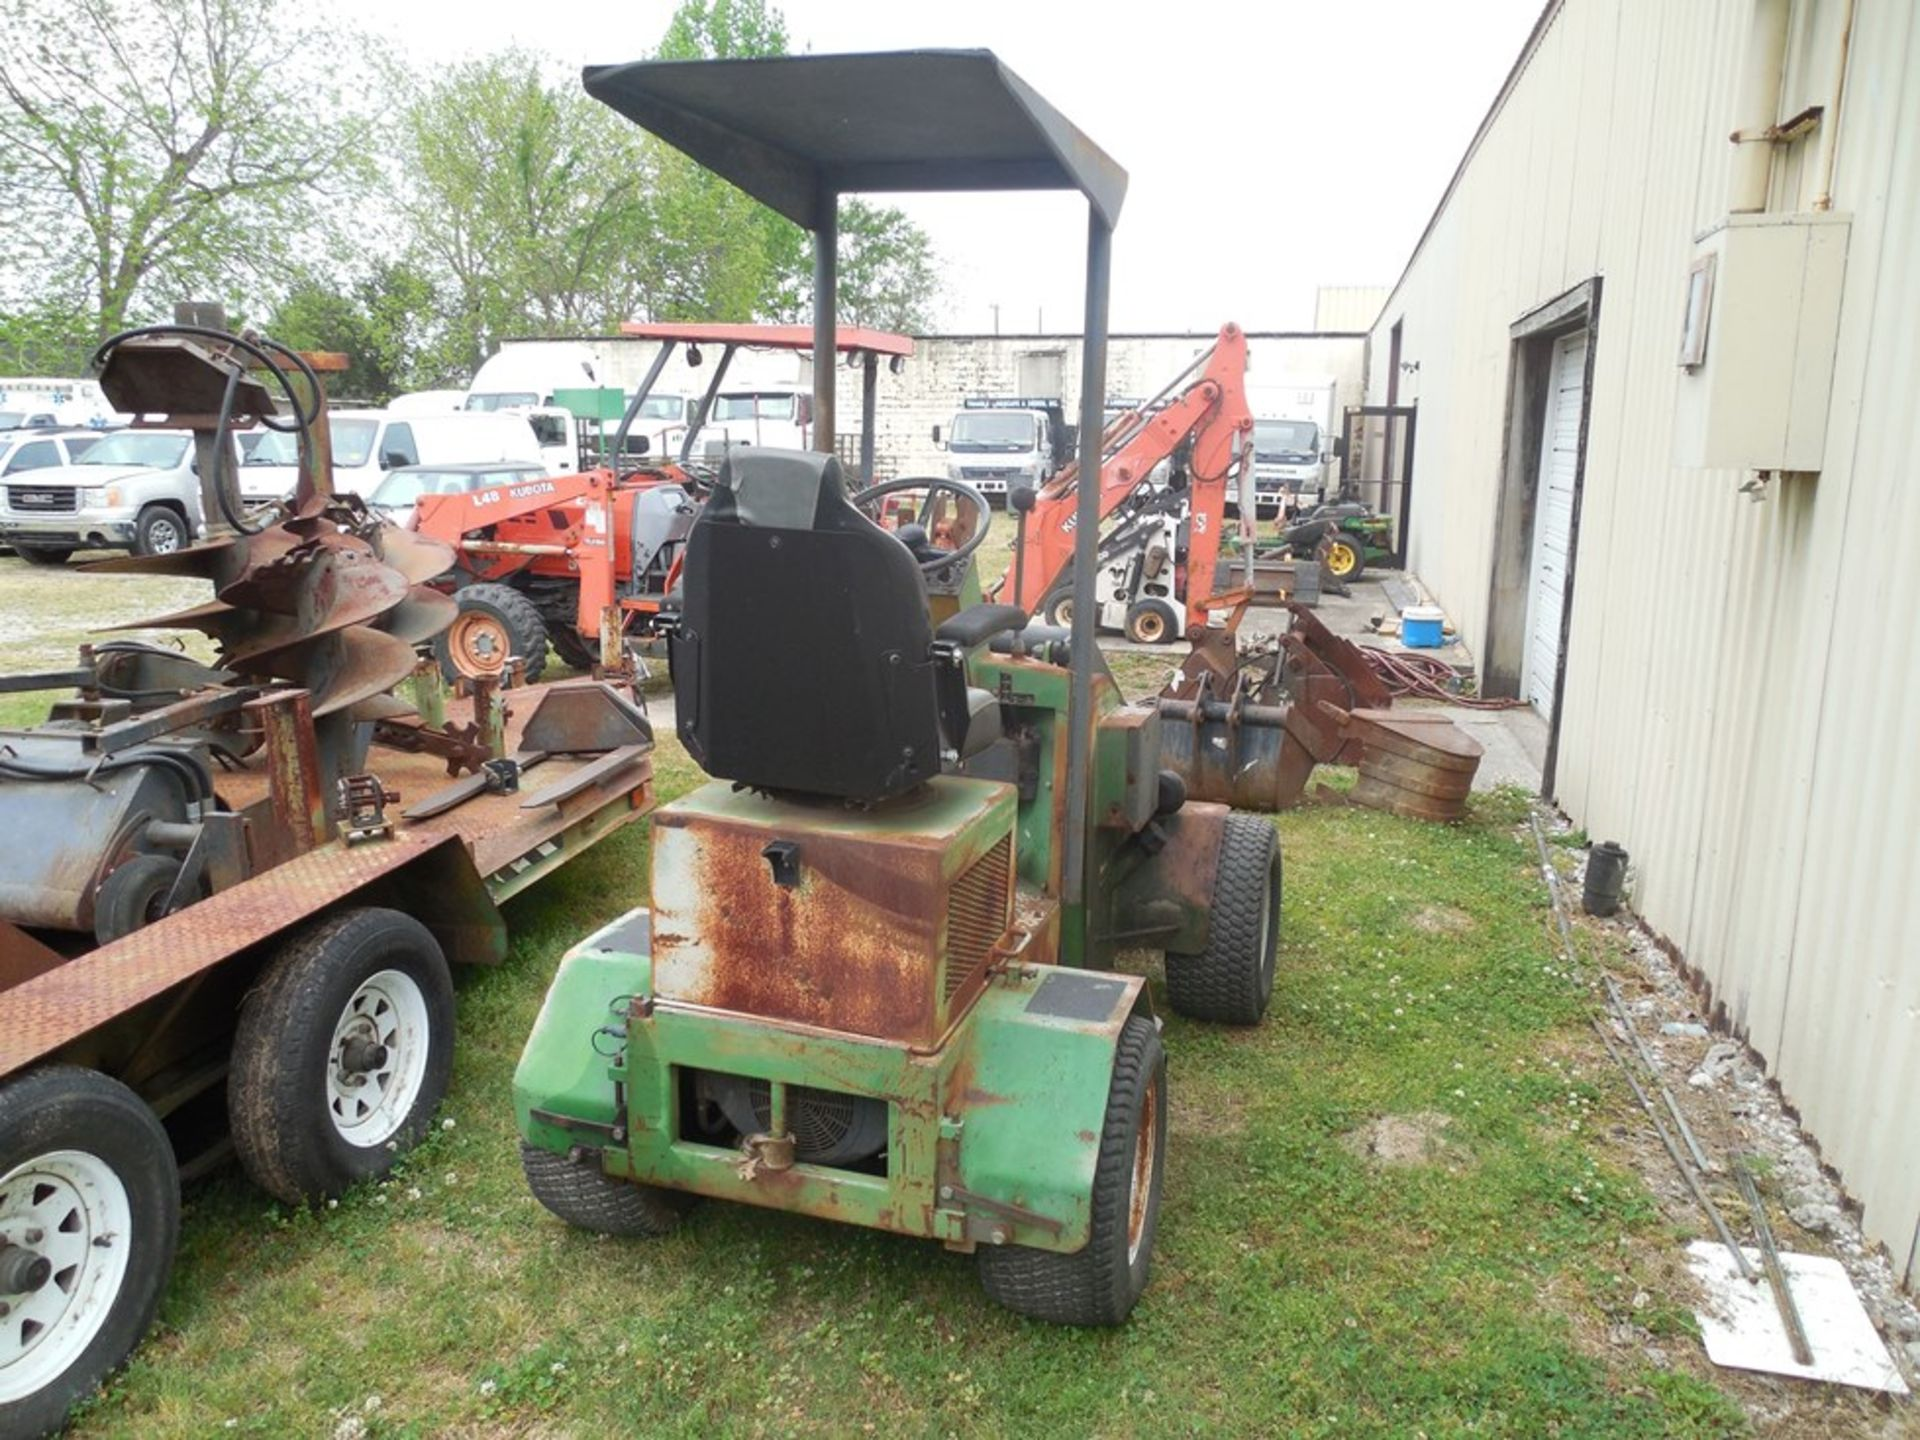 Power Trac PT-2425 Mini Skid Steer ser# 18928 with trailer, power rake, tree spade, front bucket, - Image 4 of 13